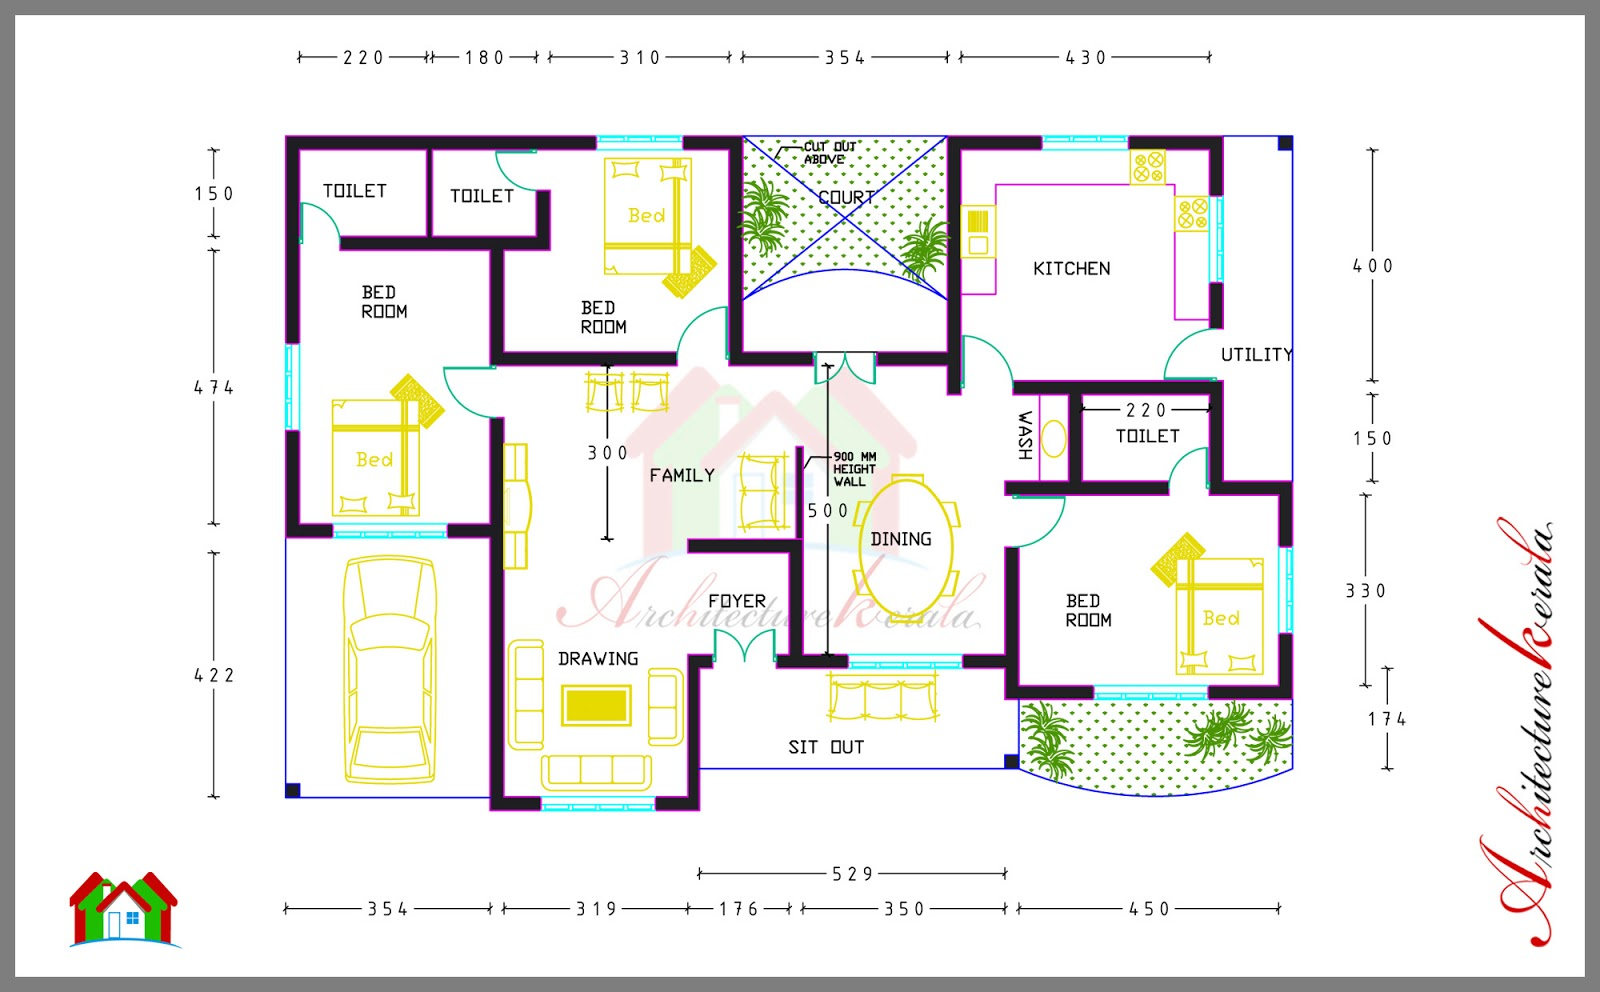 3 bed room house plan with room dimensions architecture for 3 bedroom house plan kerala